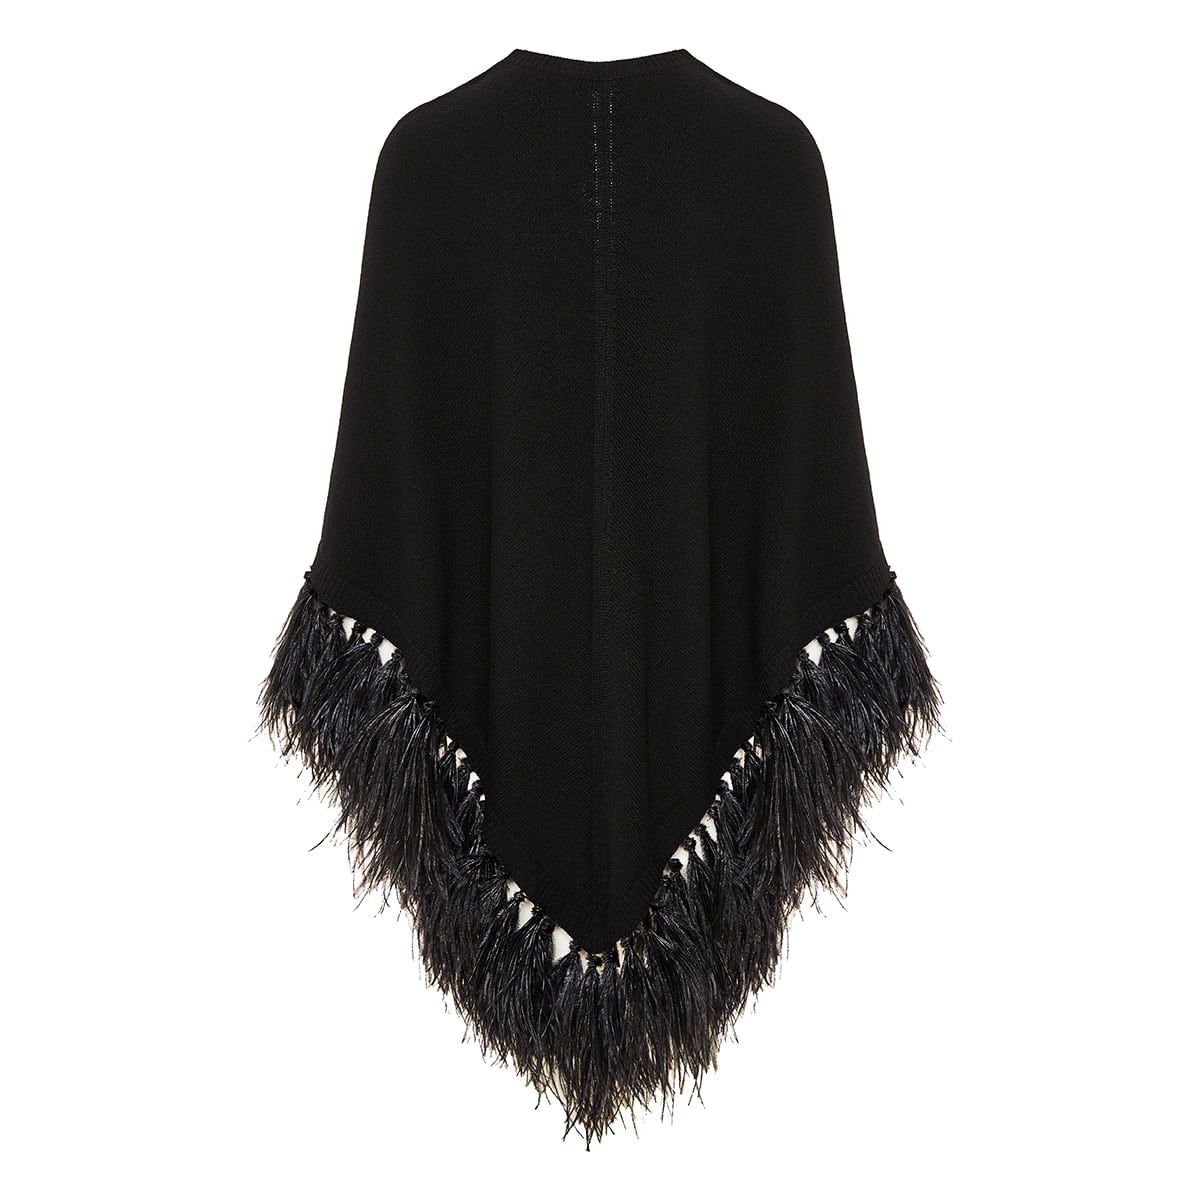 Feather-trimmed knitted poncho